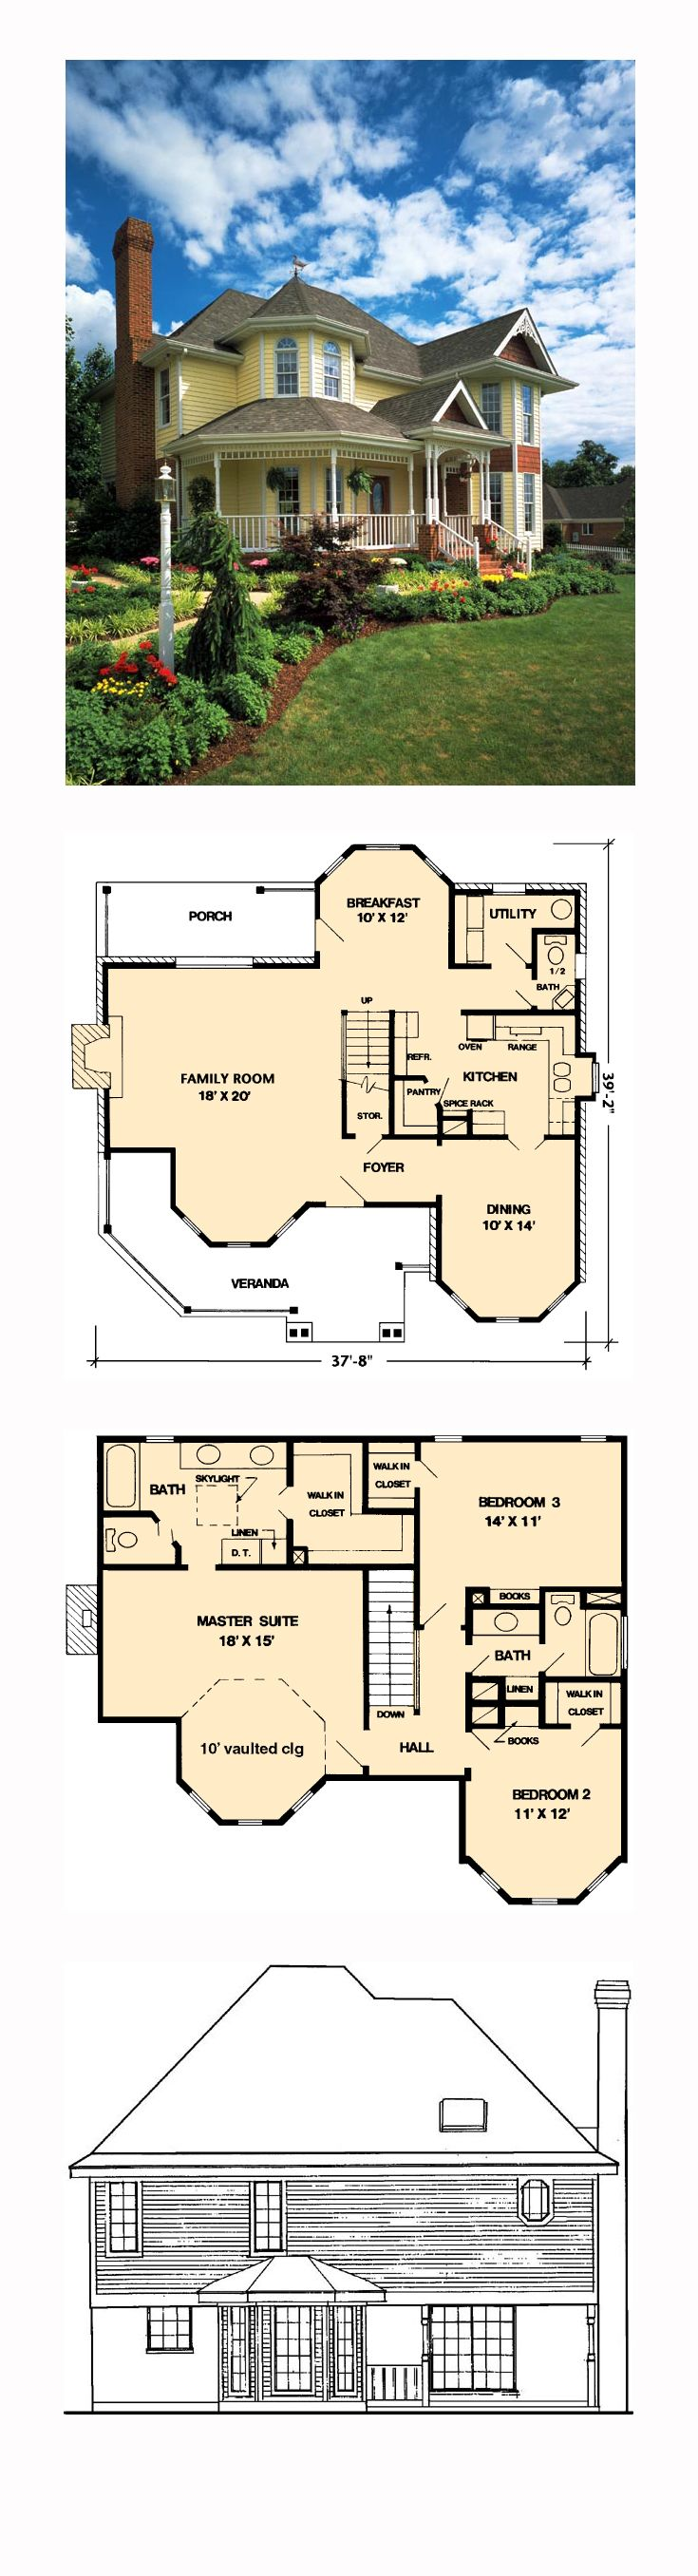 Victorian Style House Plan 95647 With 3 Bed 3 Bath 2 Car Garage Victorian House Plans House Blueprints Sims House Plans